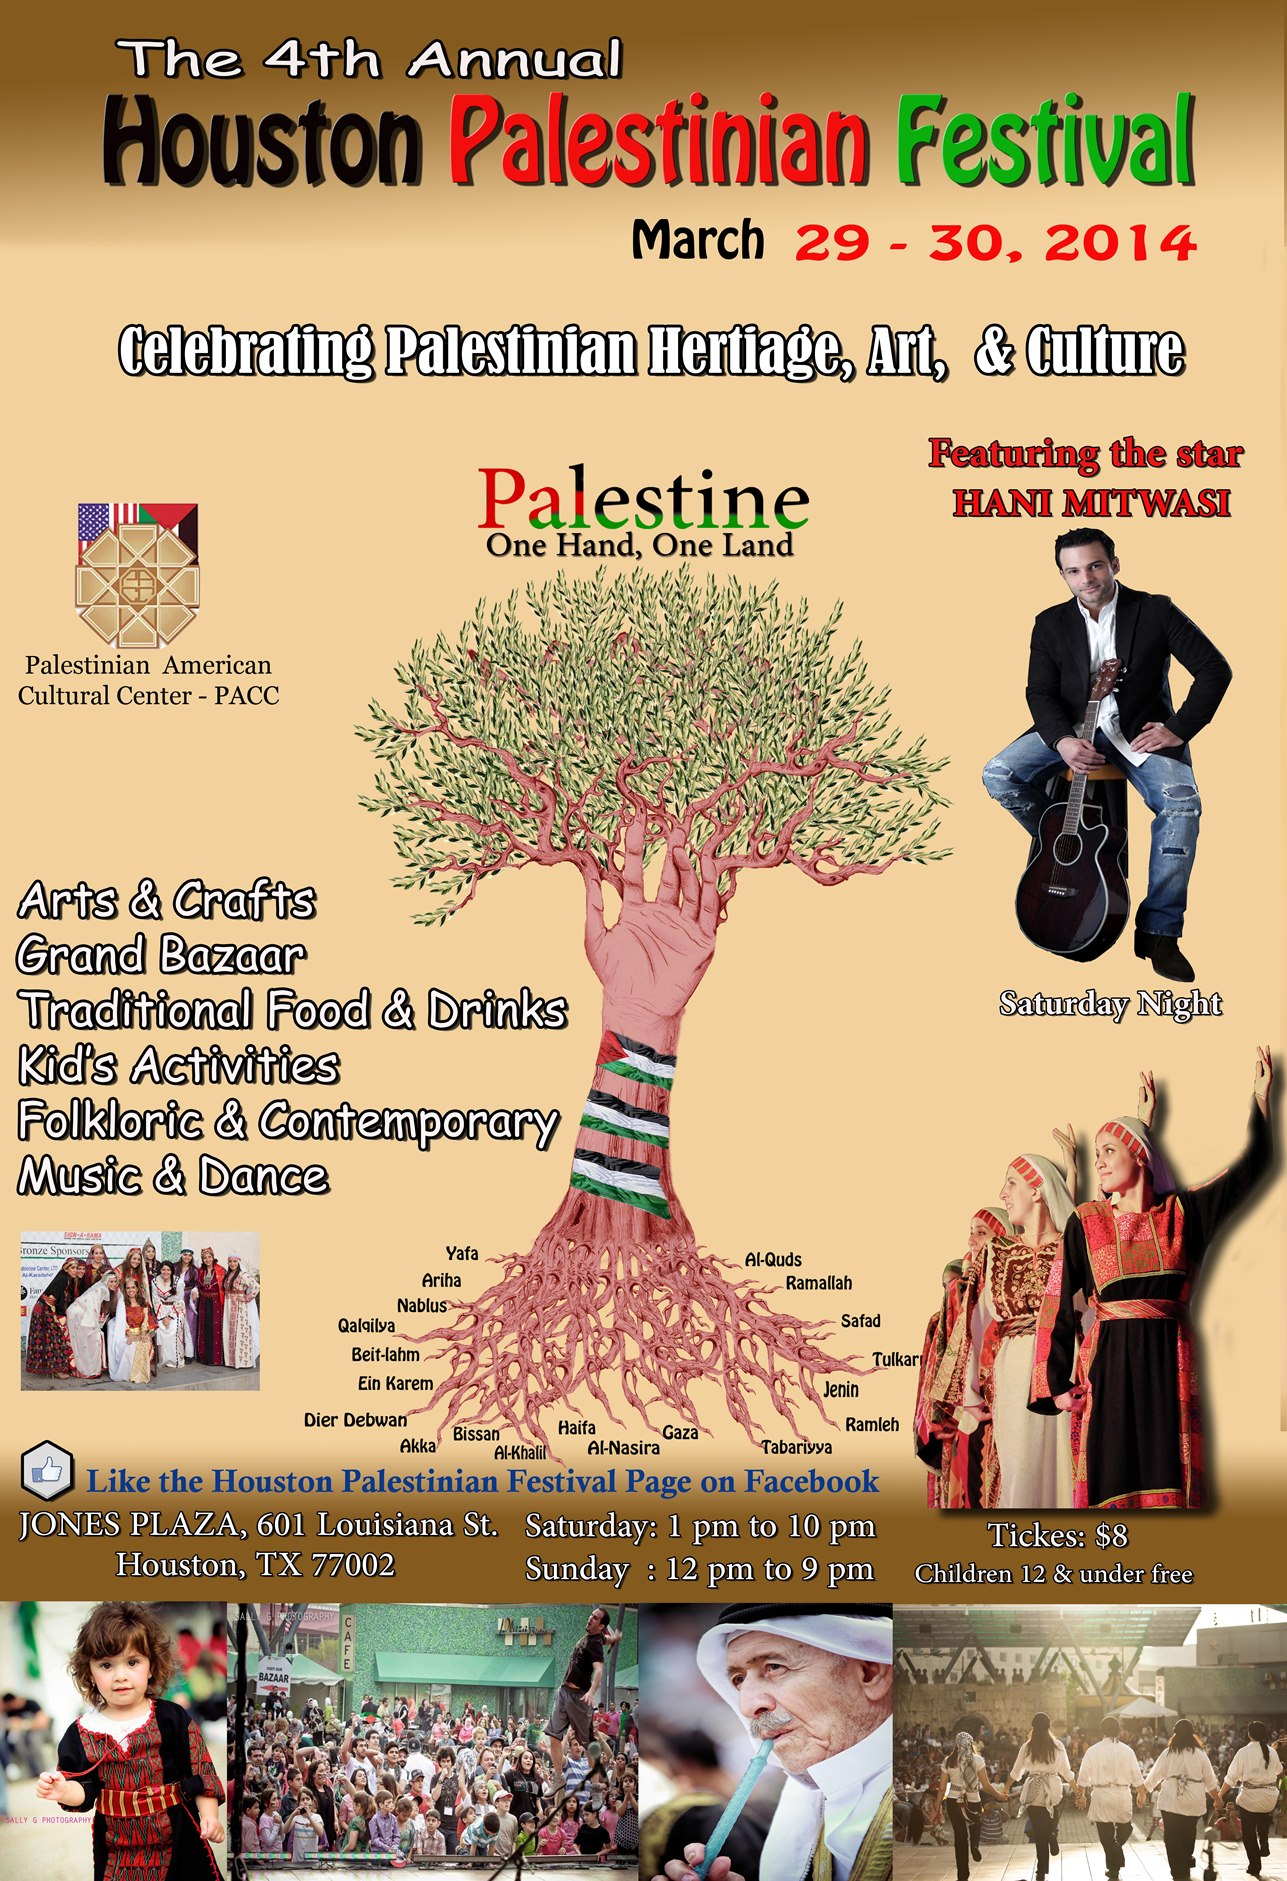 4th Annual Houston Palestinian Festival